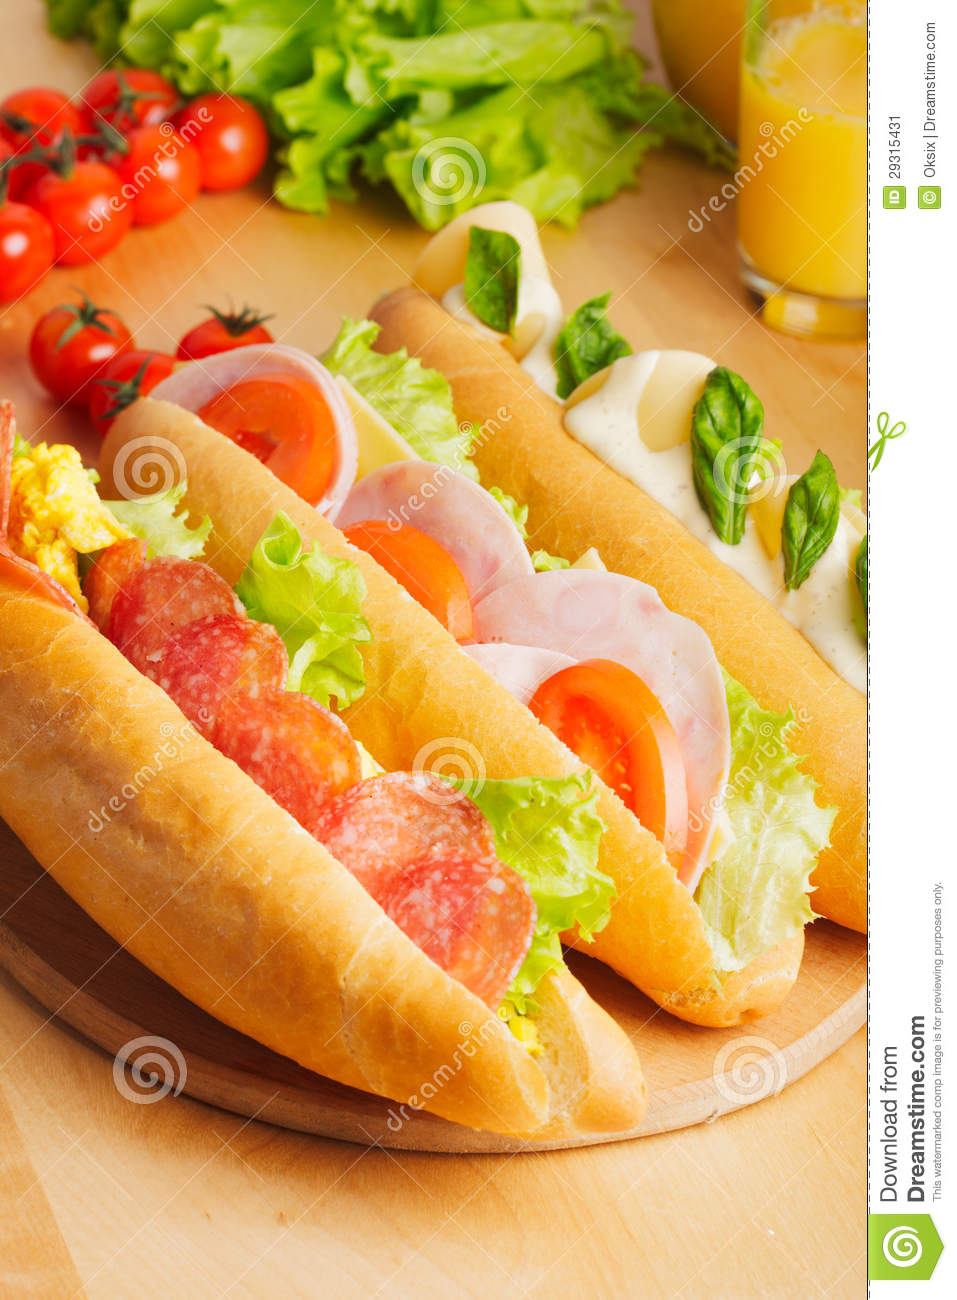 Various Types Of Sandwiches Stock Image - Image: 29315431